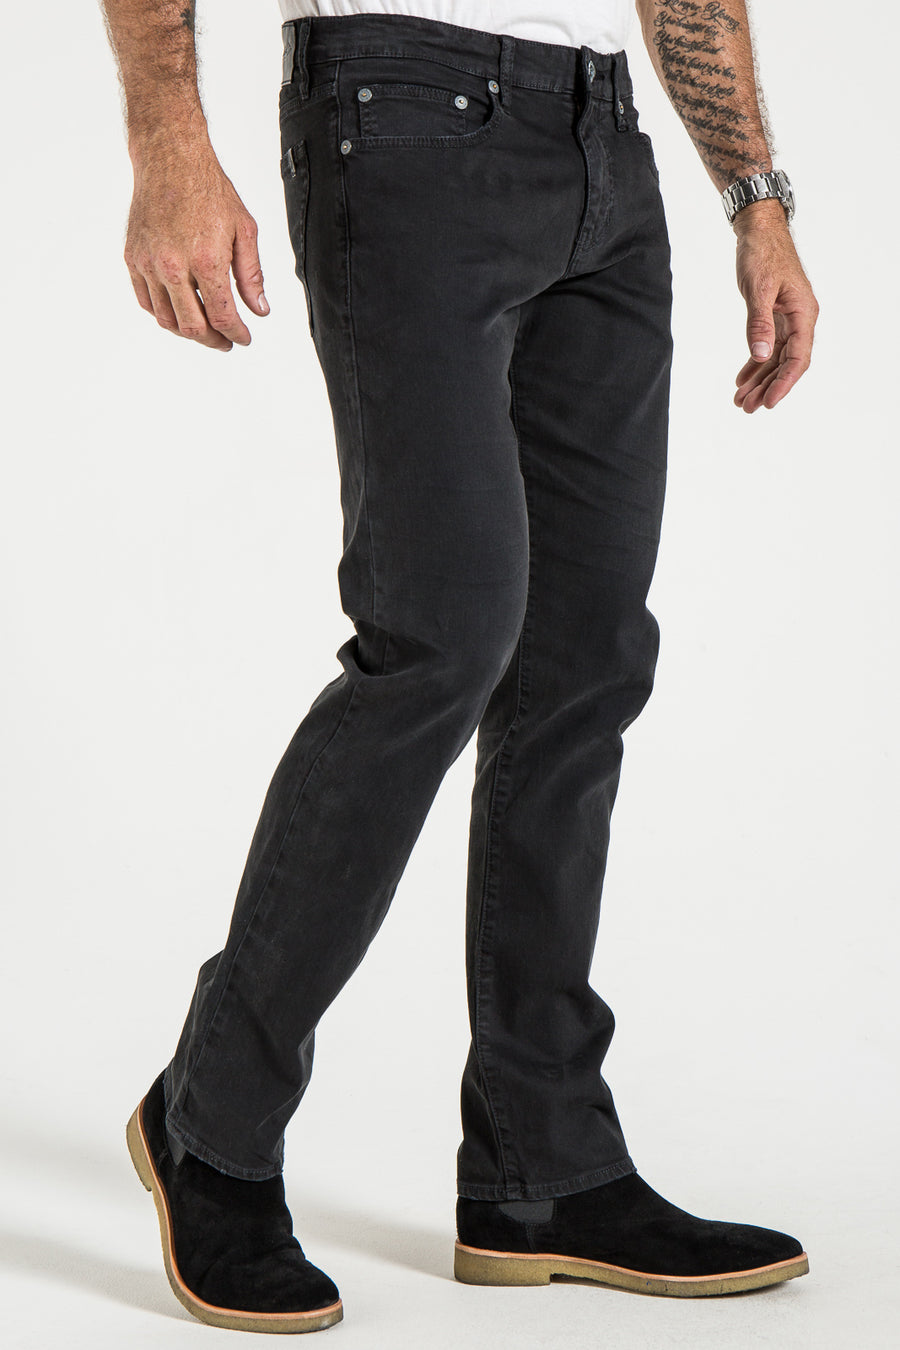 BARFLY SLIM IN BLACK VINTAGE TWILL